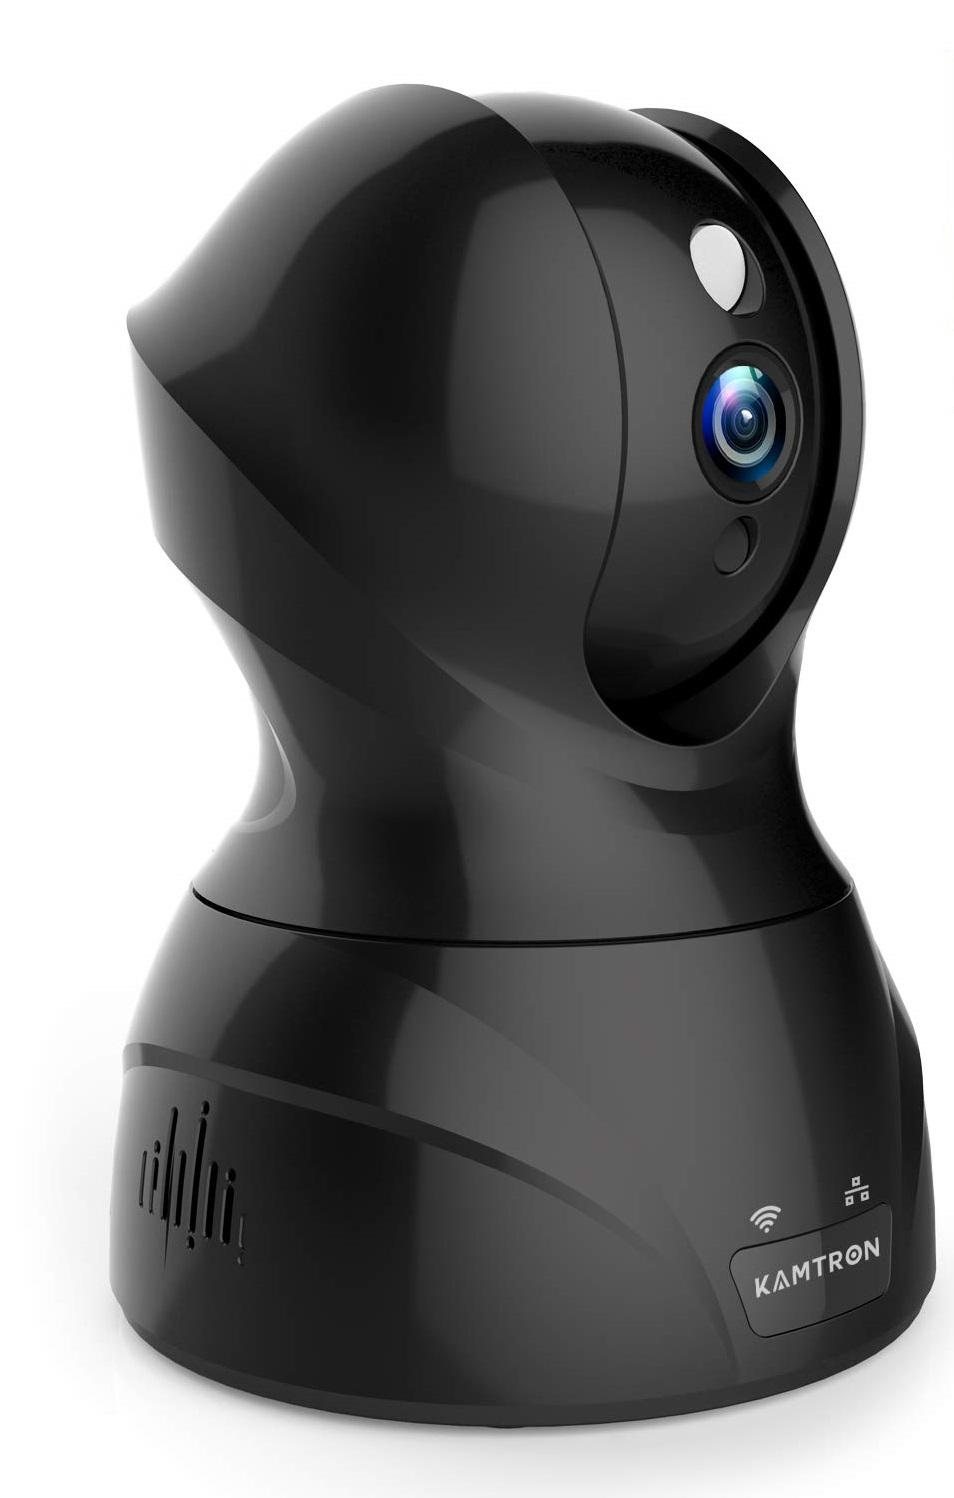 buy the best KAMTRON Wireless Indoor Security Camera with Night Vision